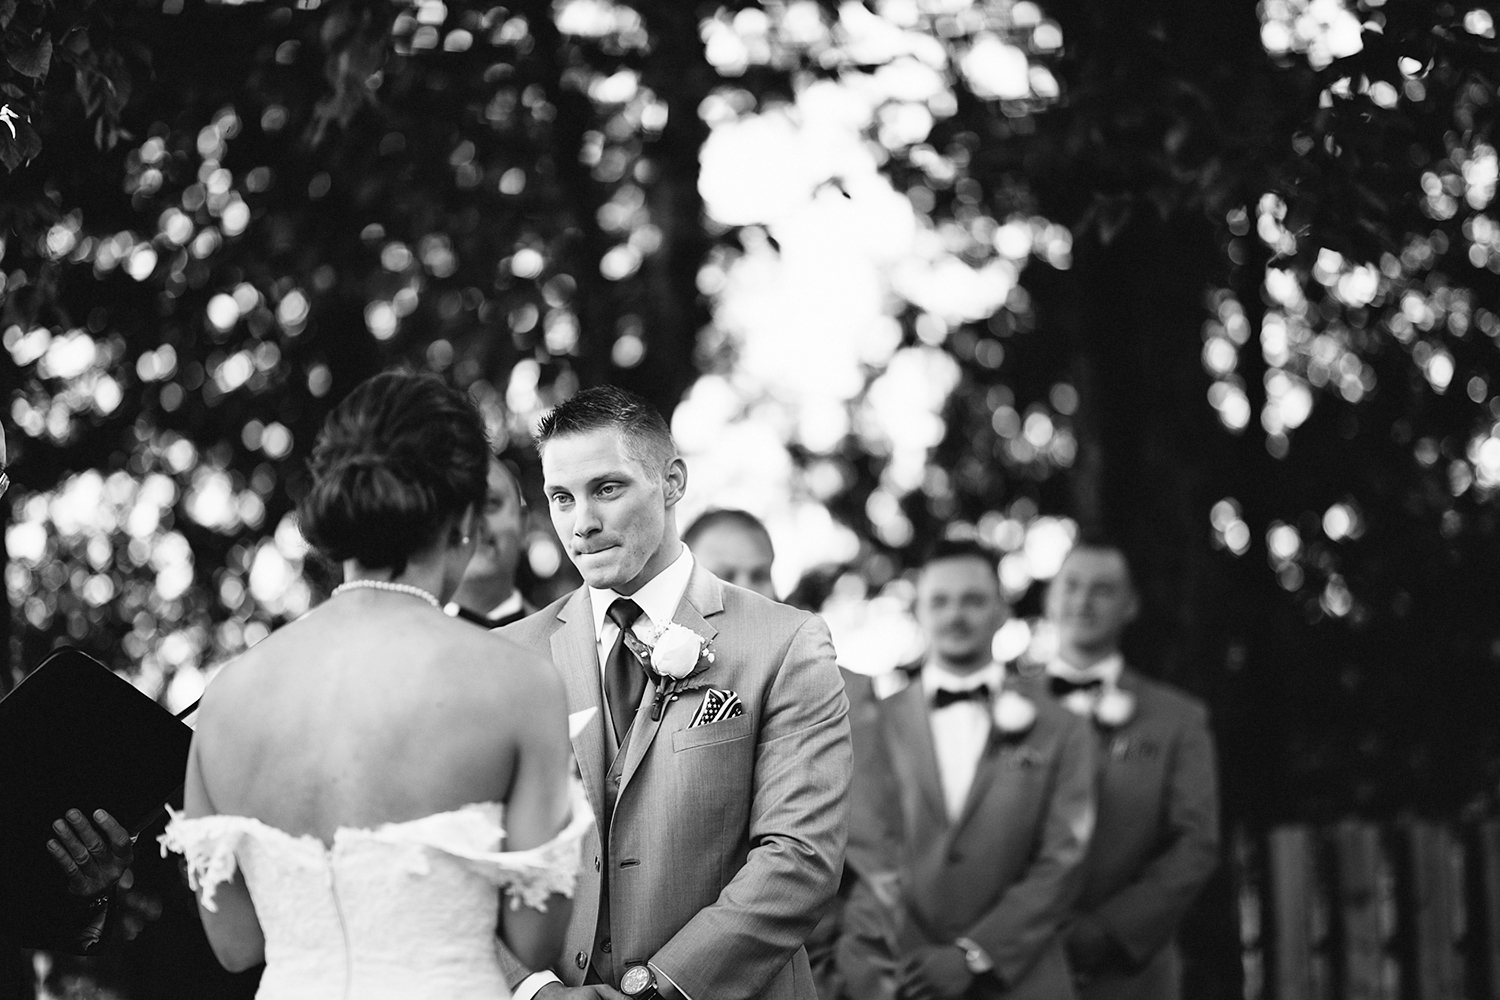 muskoka-wedding-photographer-toronto-wedding-photography-hidden-valley-resort-documentary-photojournalistic-fine-art-wedding-photography-lakeside-ceremony-cottage-country-bride-and-groom-saying-vows-bride-emotional-groom-crying-bw.jpg